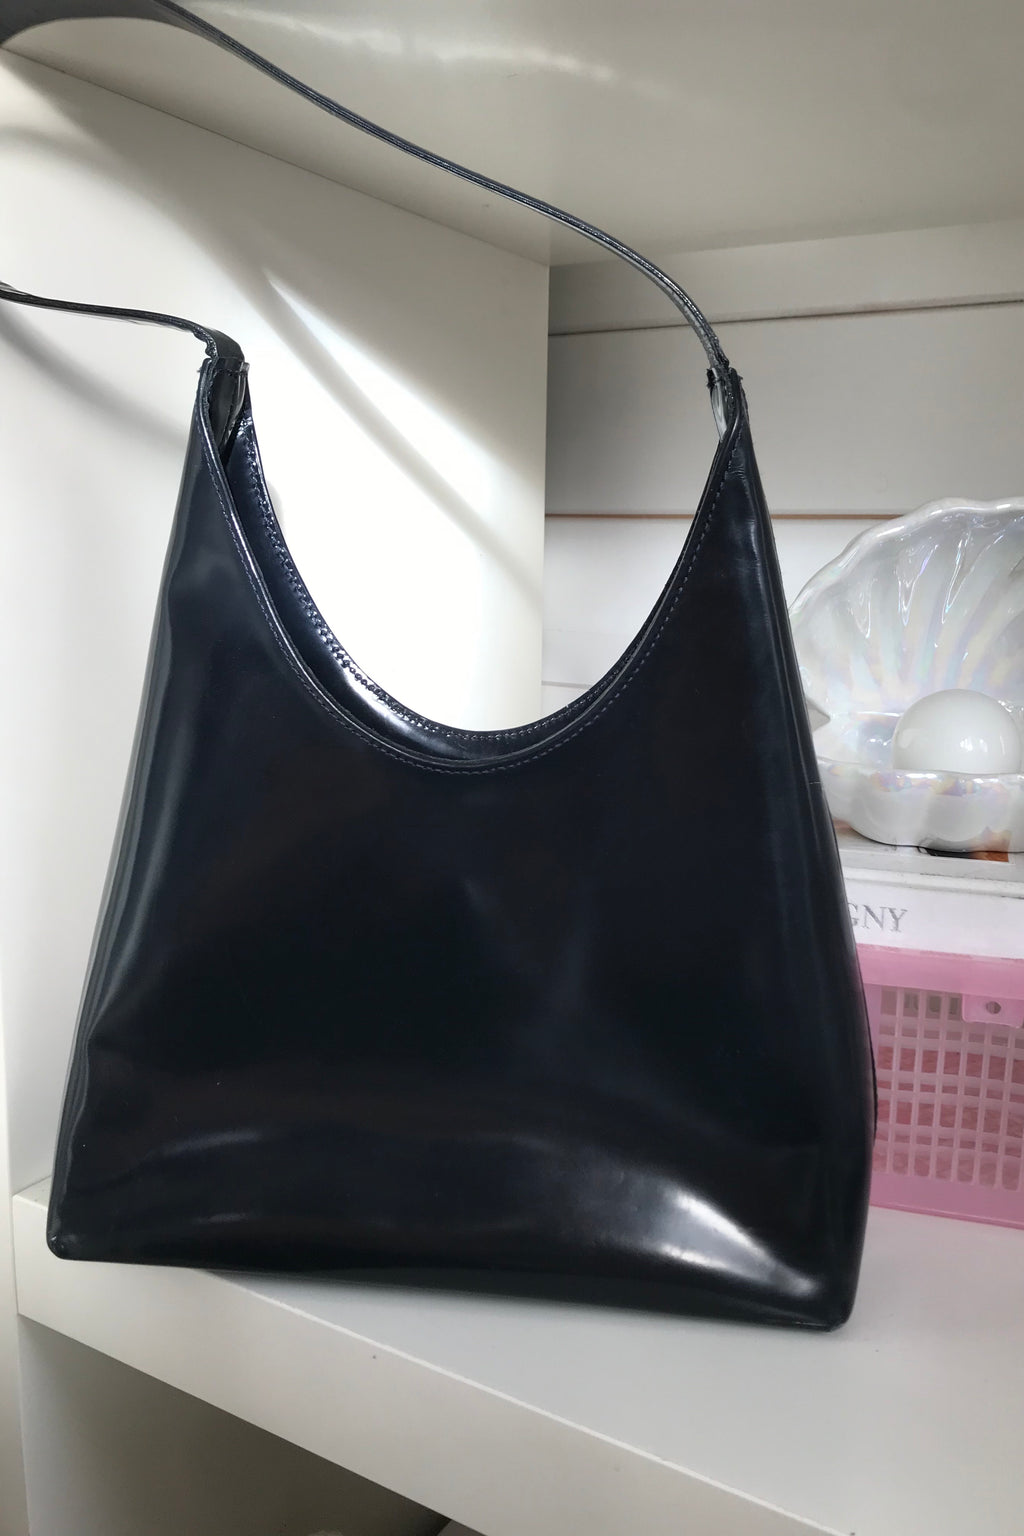 Beautiful vintage 90s black leather handbag by Coccinelle